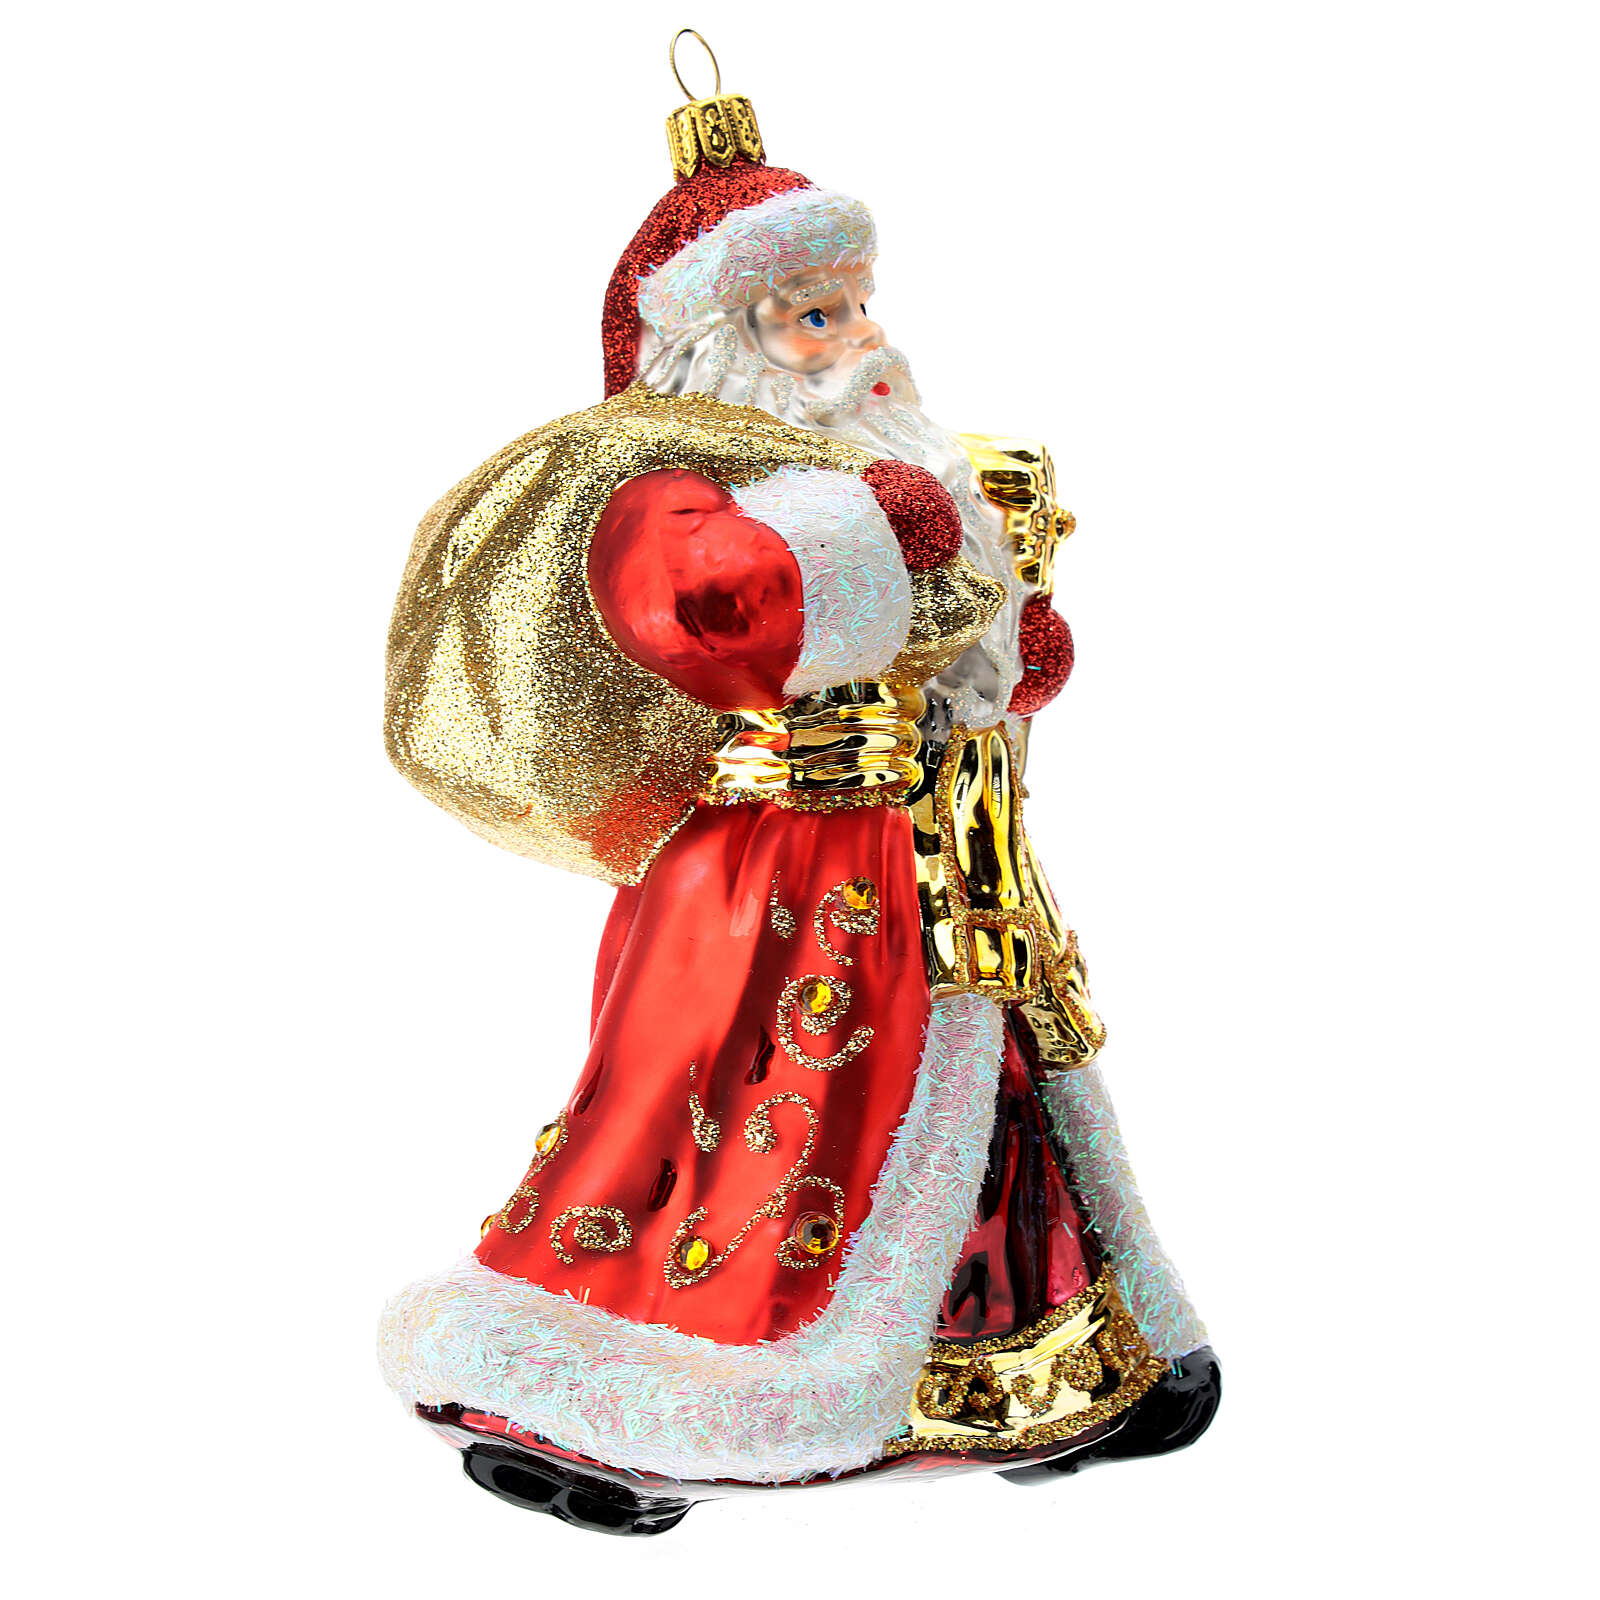 Santa Claus Christmas ornament in blown glass, red and gold 4